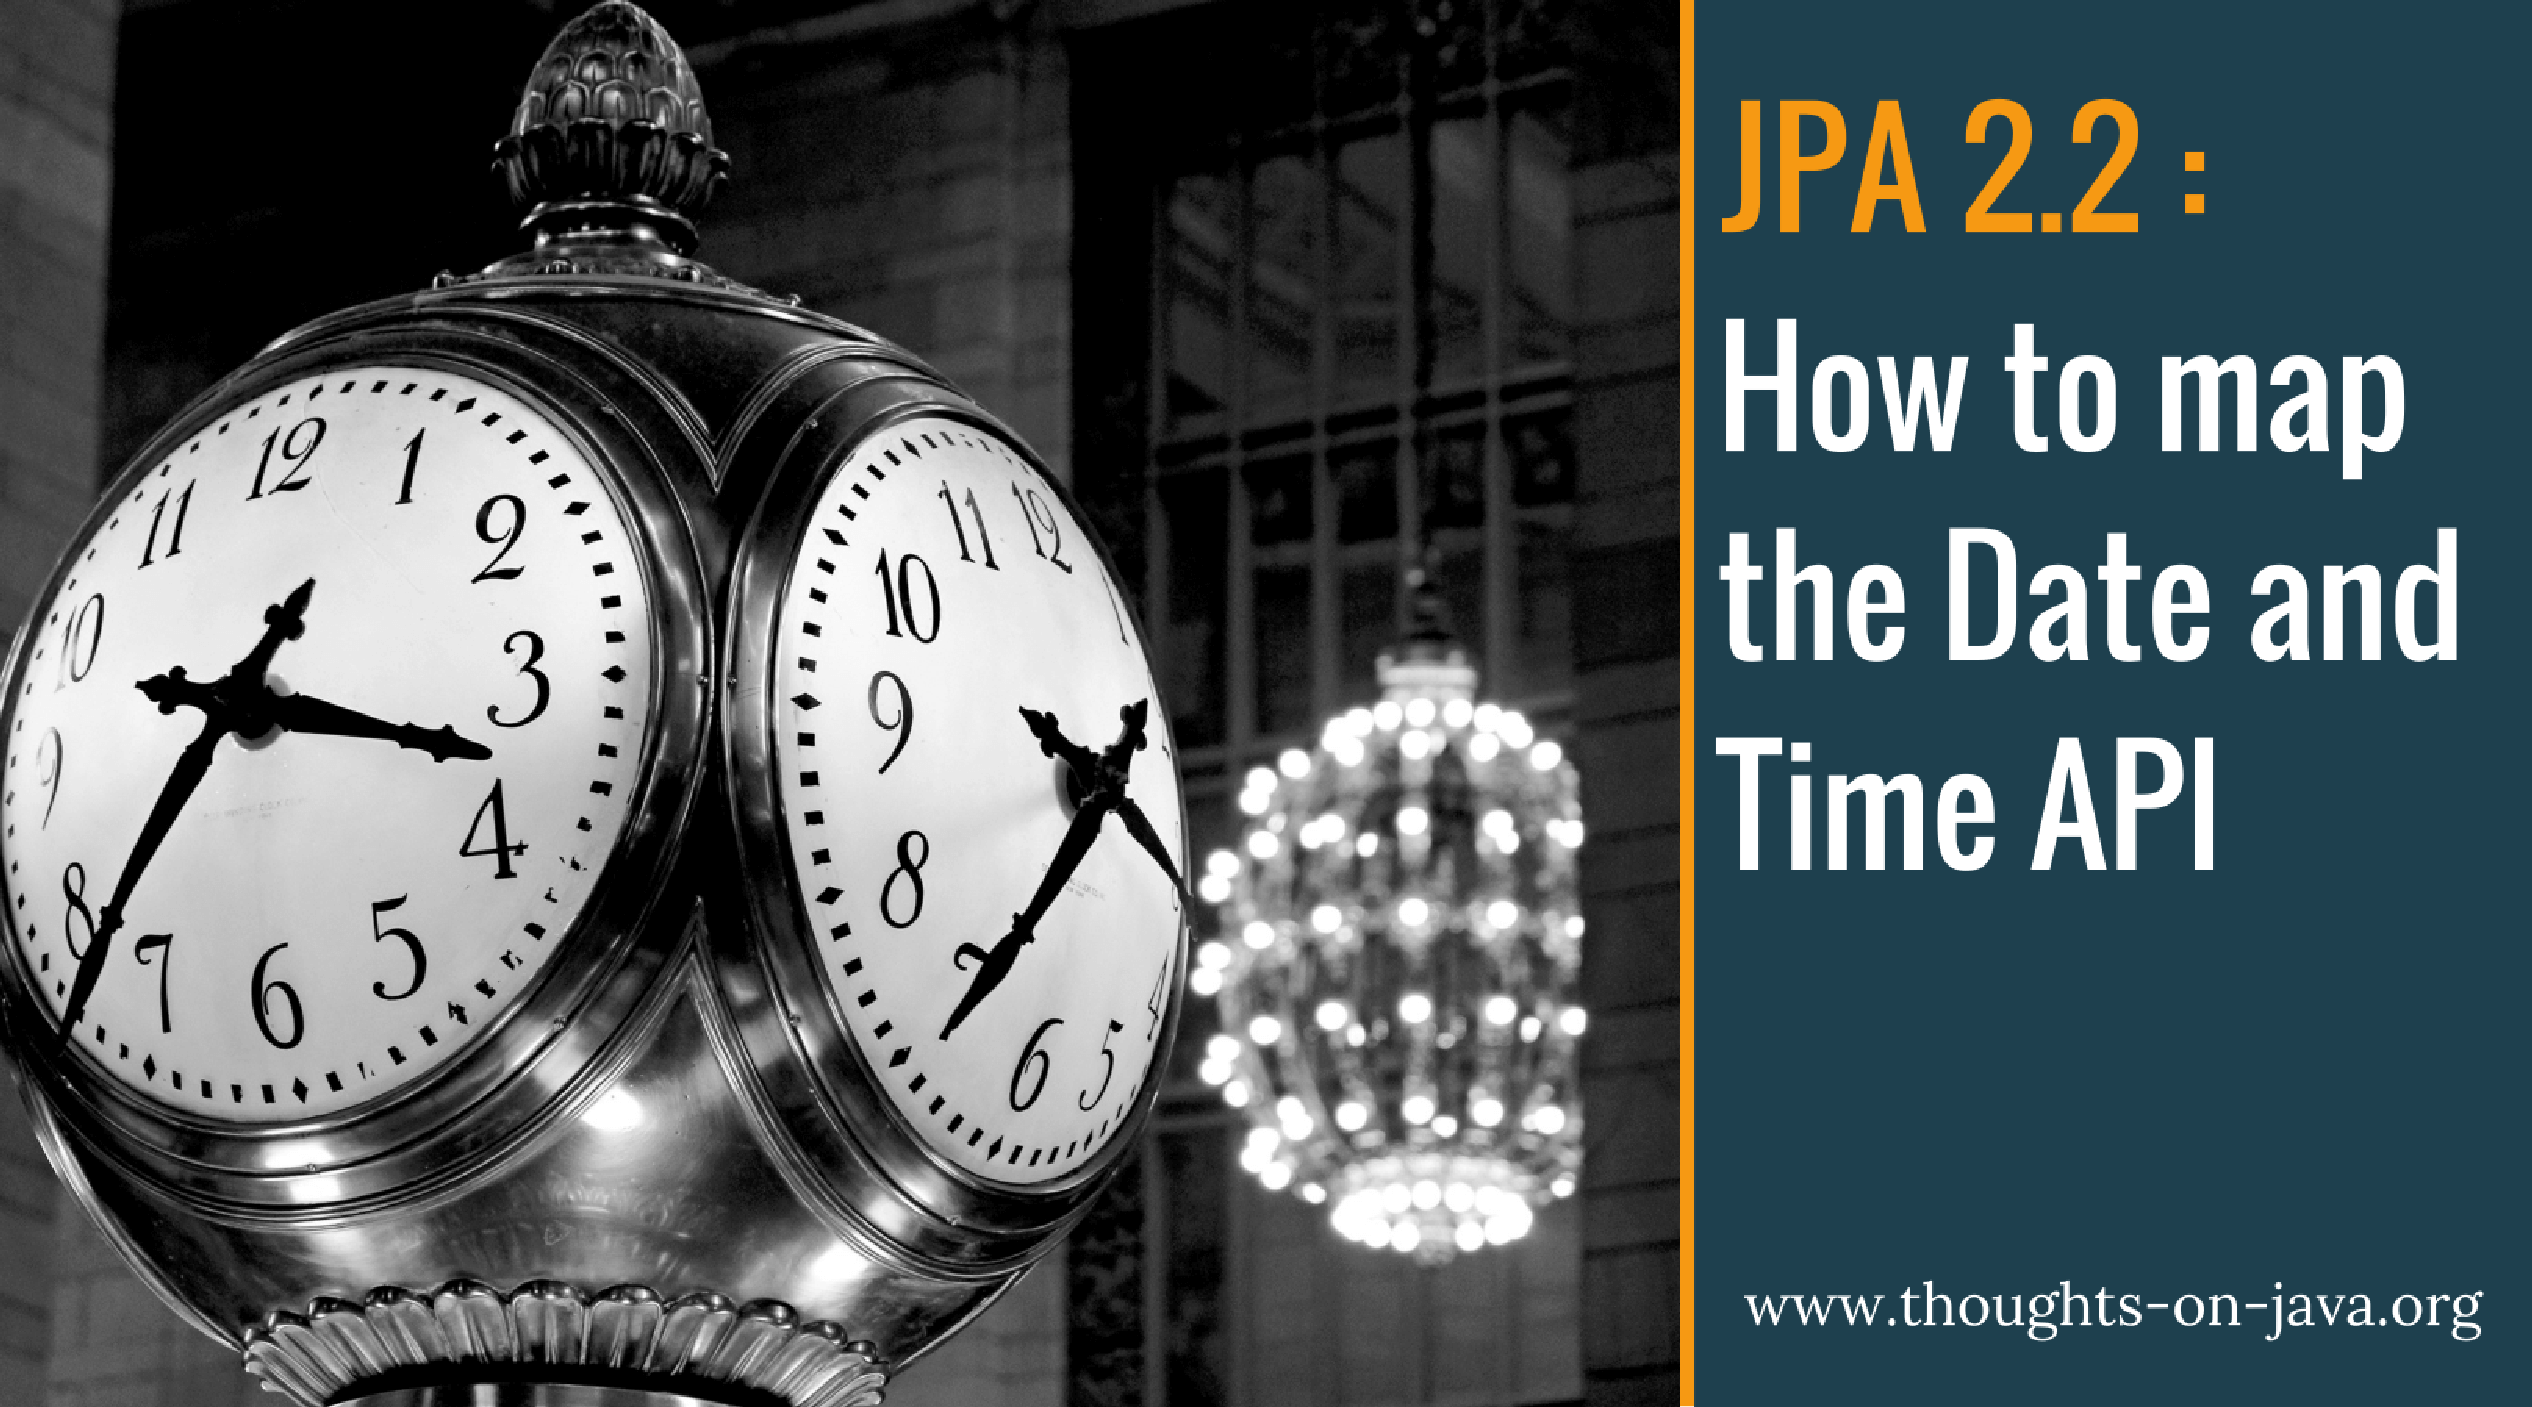 How To Map The Date And Time API with JPA 2 2